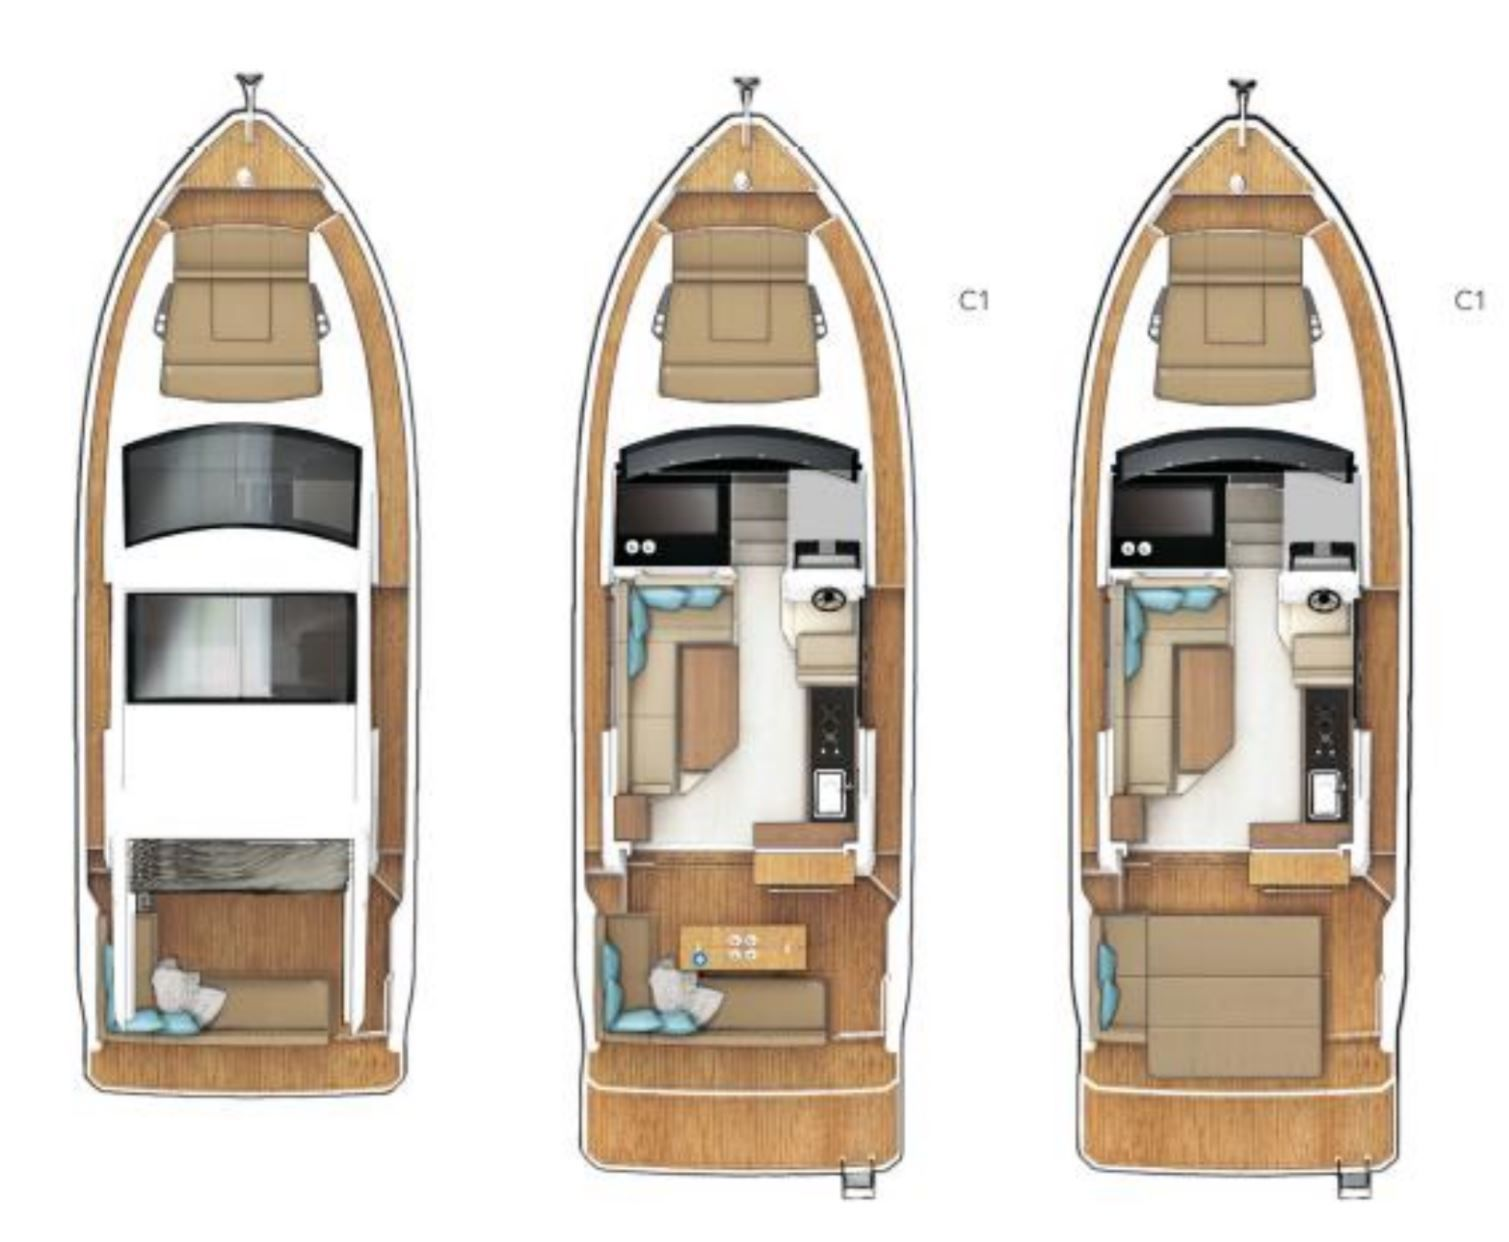 Sealine launches two new models, the Sealine C335 and C335V